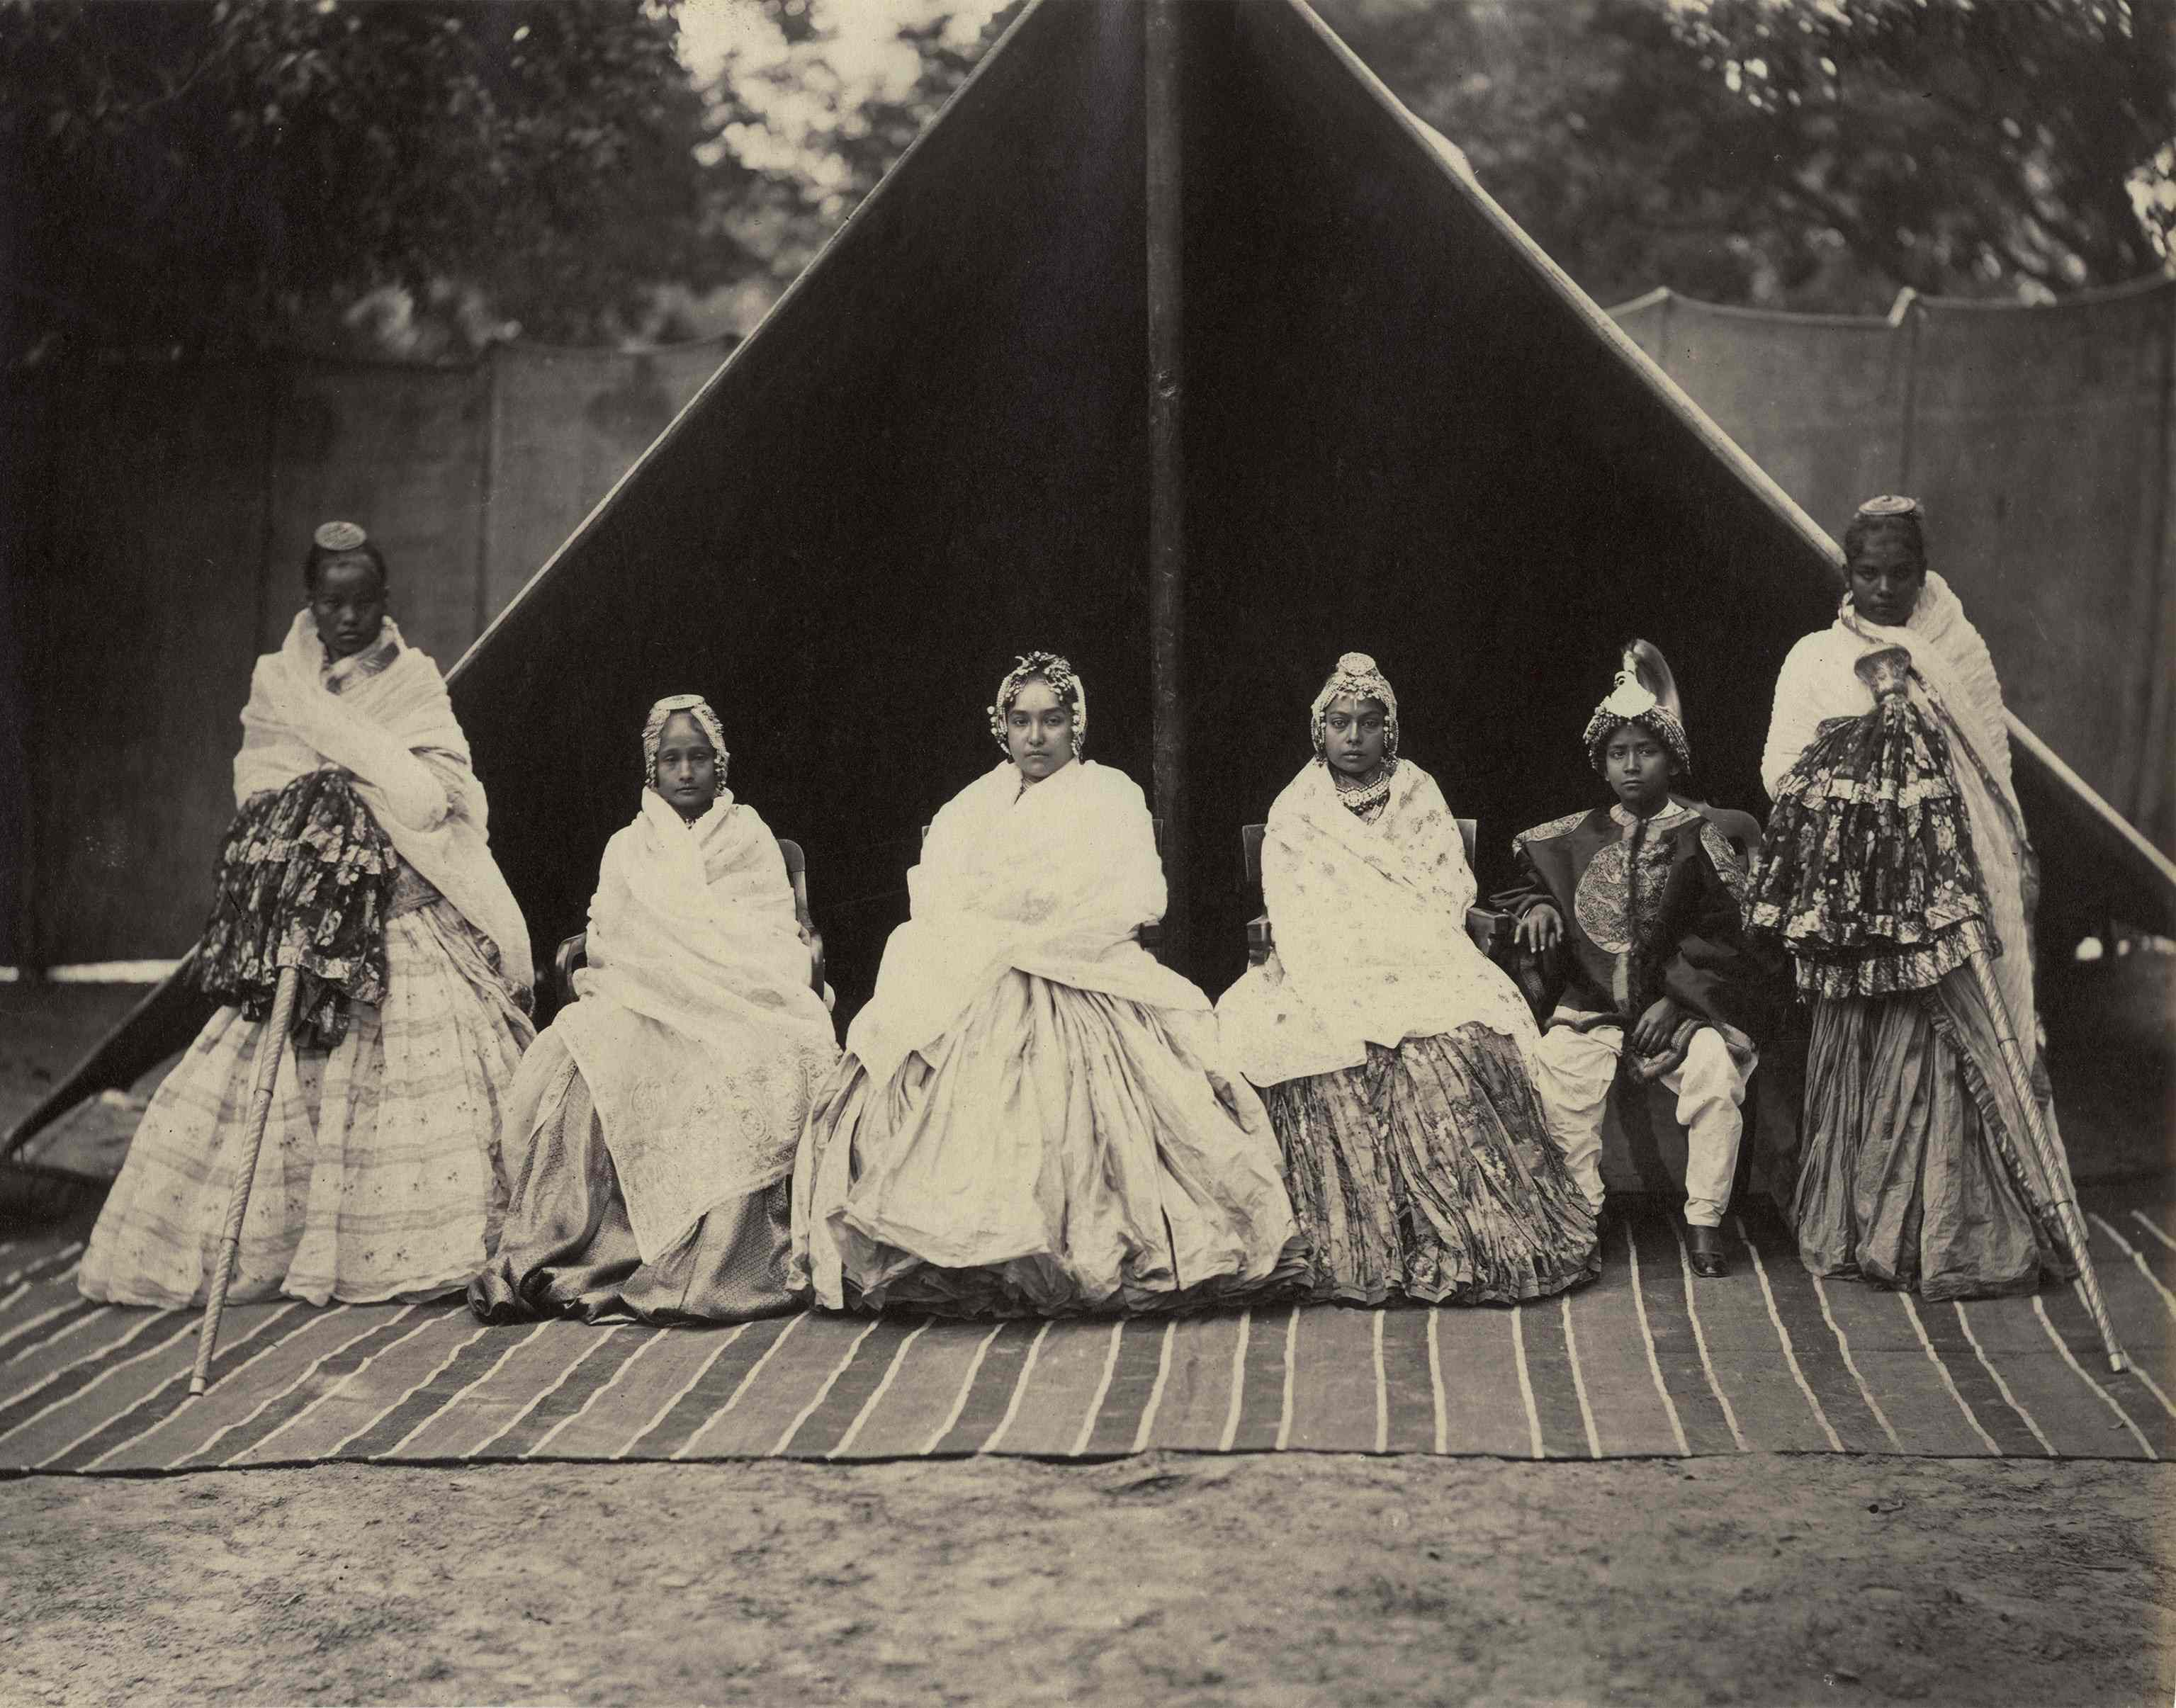 Samuel Bourne - 'Ladies in Kashmir', India, c. 1865, Albumen print